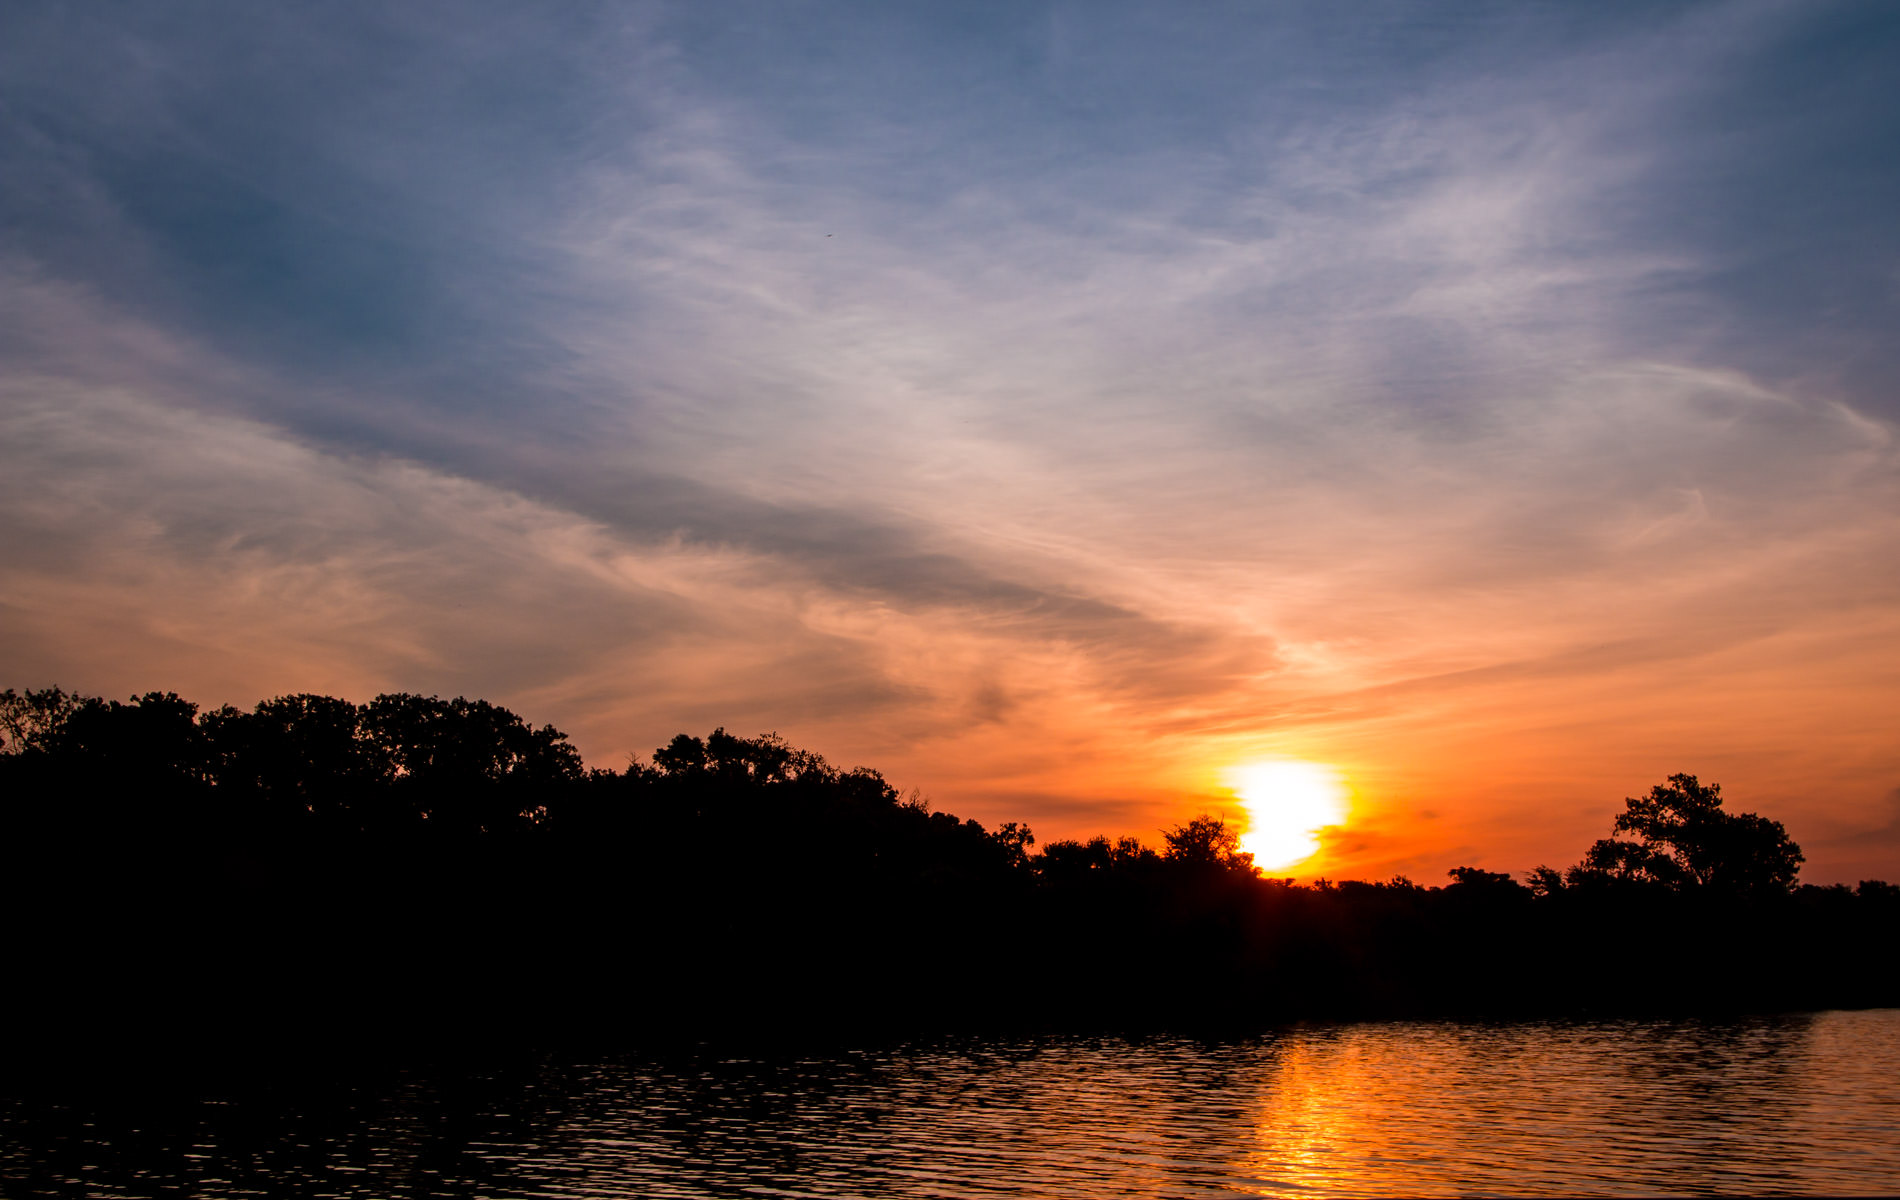 The sun rises over Dallas' White Rock Lake.